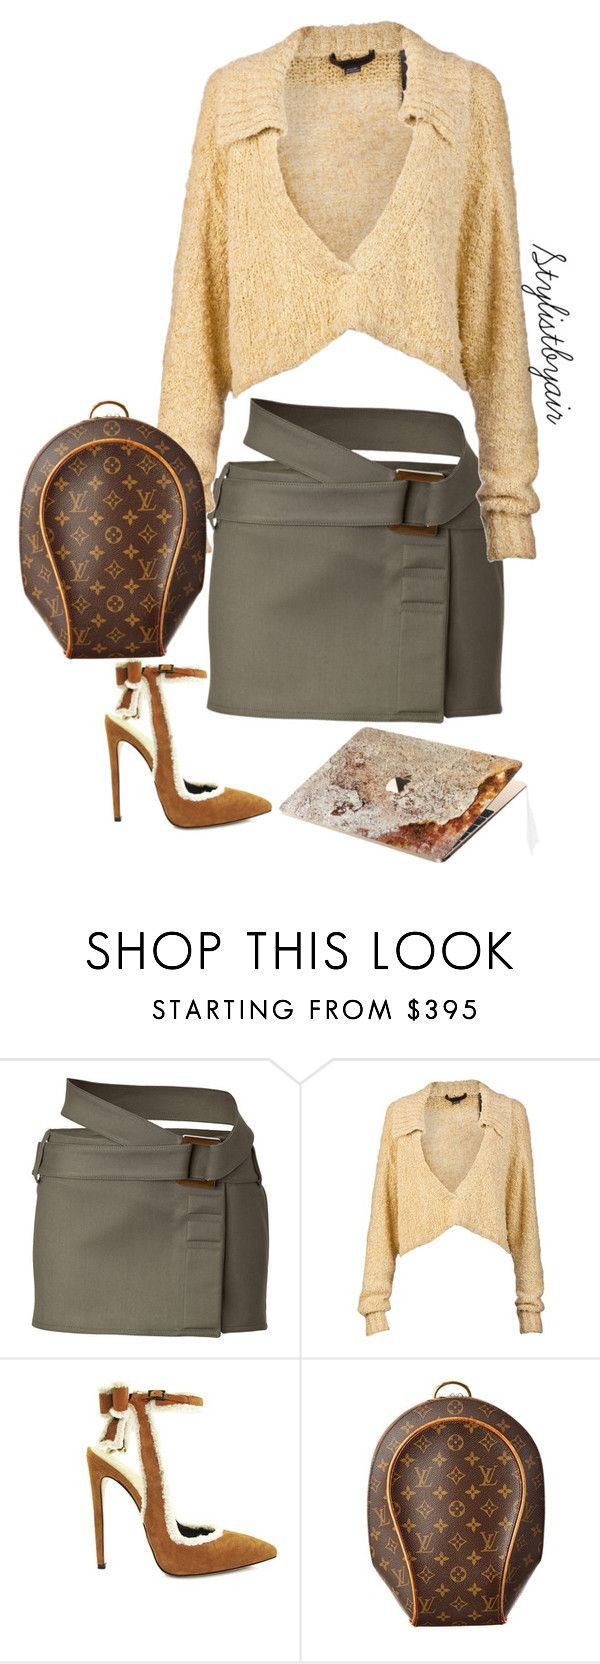 """""""Untitled #6647"""" by stylistbyair ❤ liked on Polyvore featuring Paco Rabanne, Alexander Wang, Louis Vuitton and ROXXLYN"""